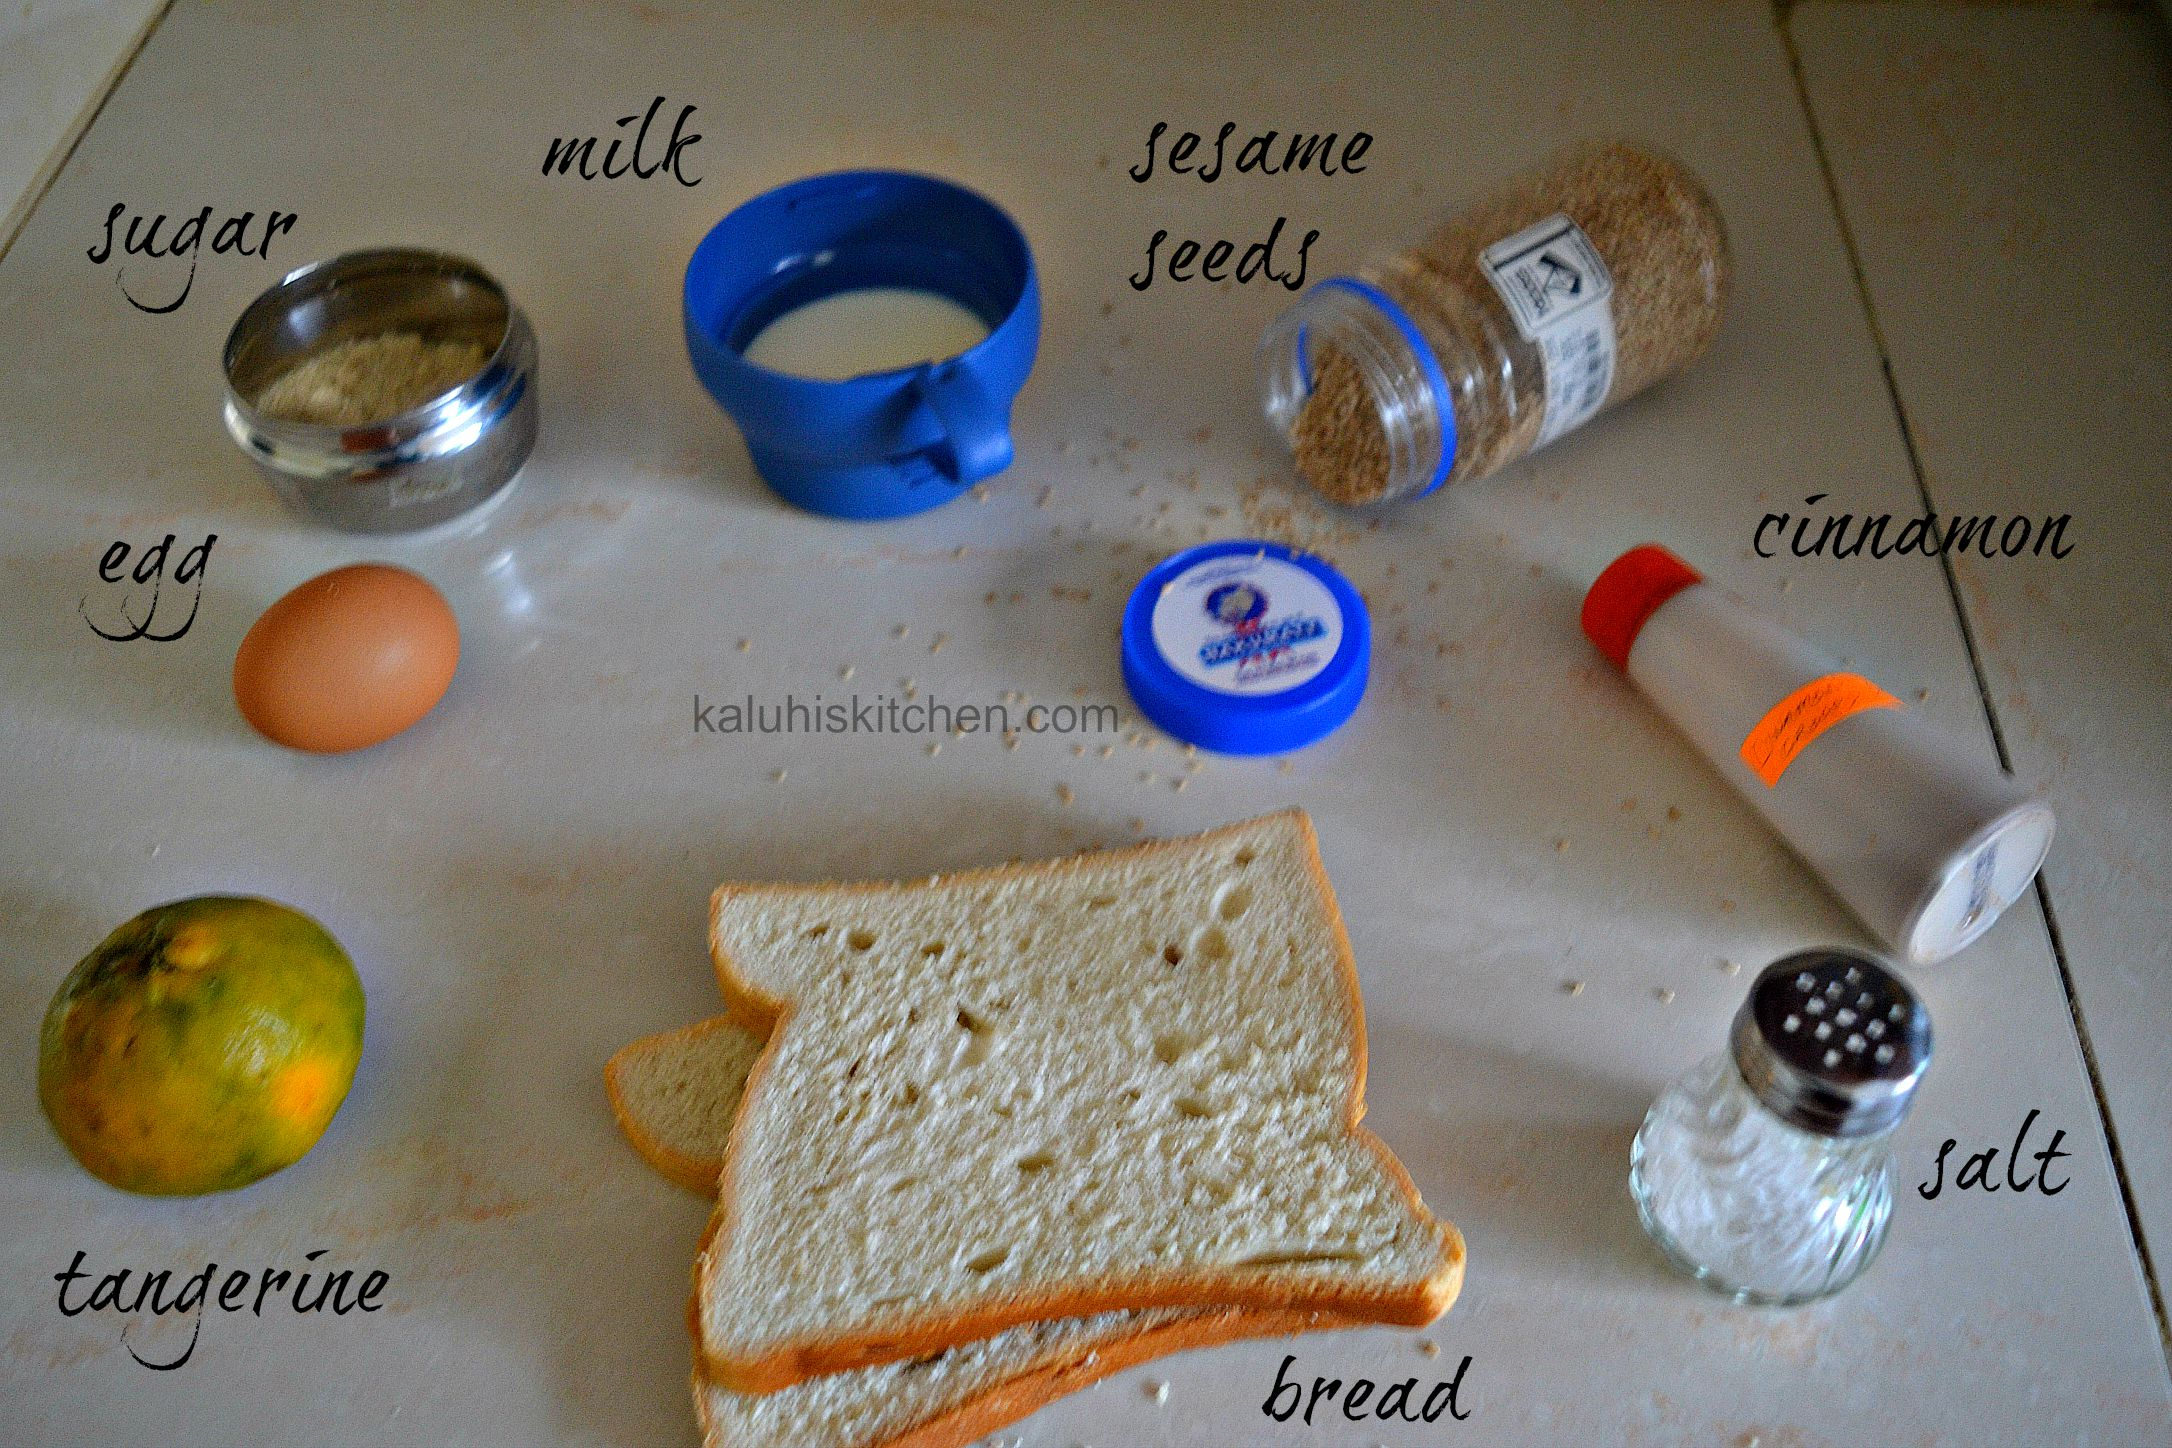 sesame seed and tangerine french toast ingredients_kaluhiskitchen.com_how to make french toast